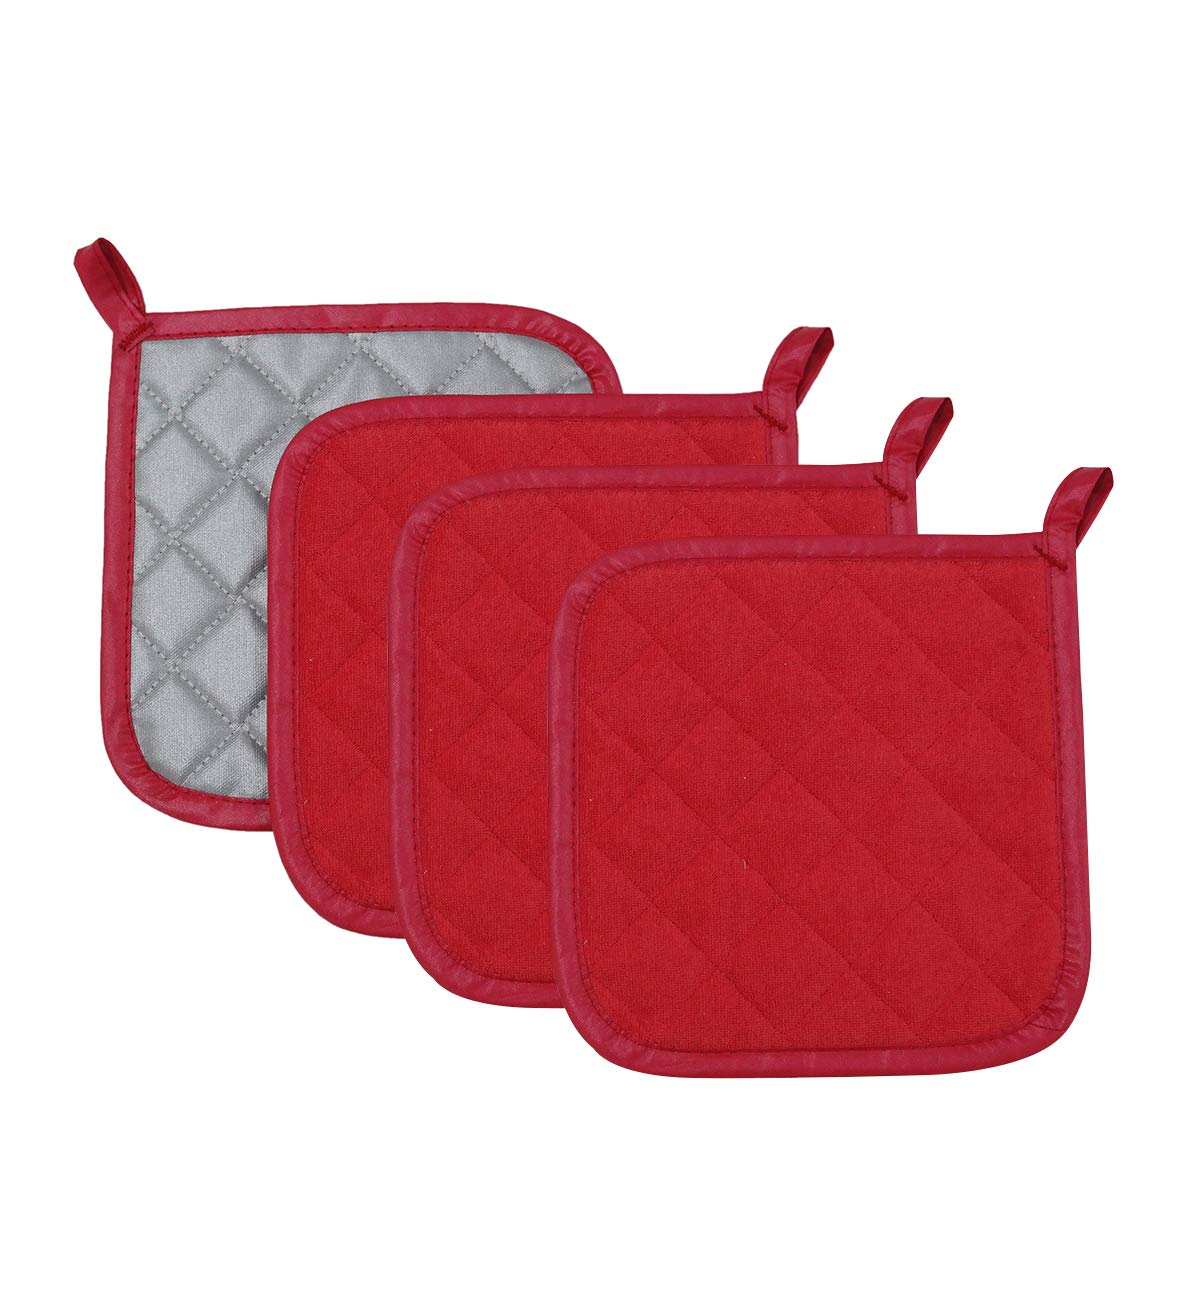 100% Cotton Made Pot Holder Heat Resistant Coaster Potholder for Cooking and Baking (4, Red)